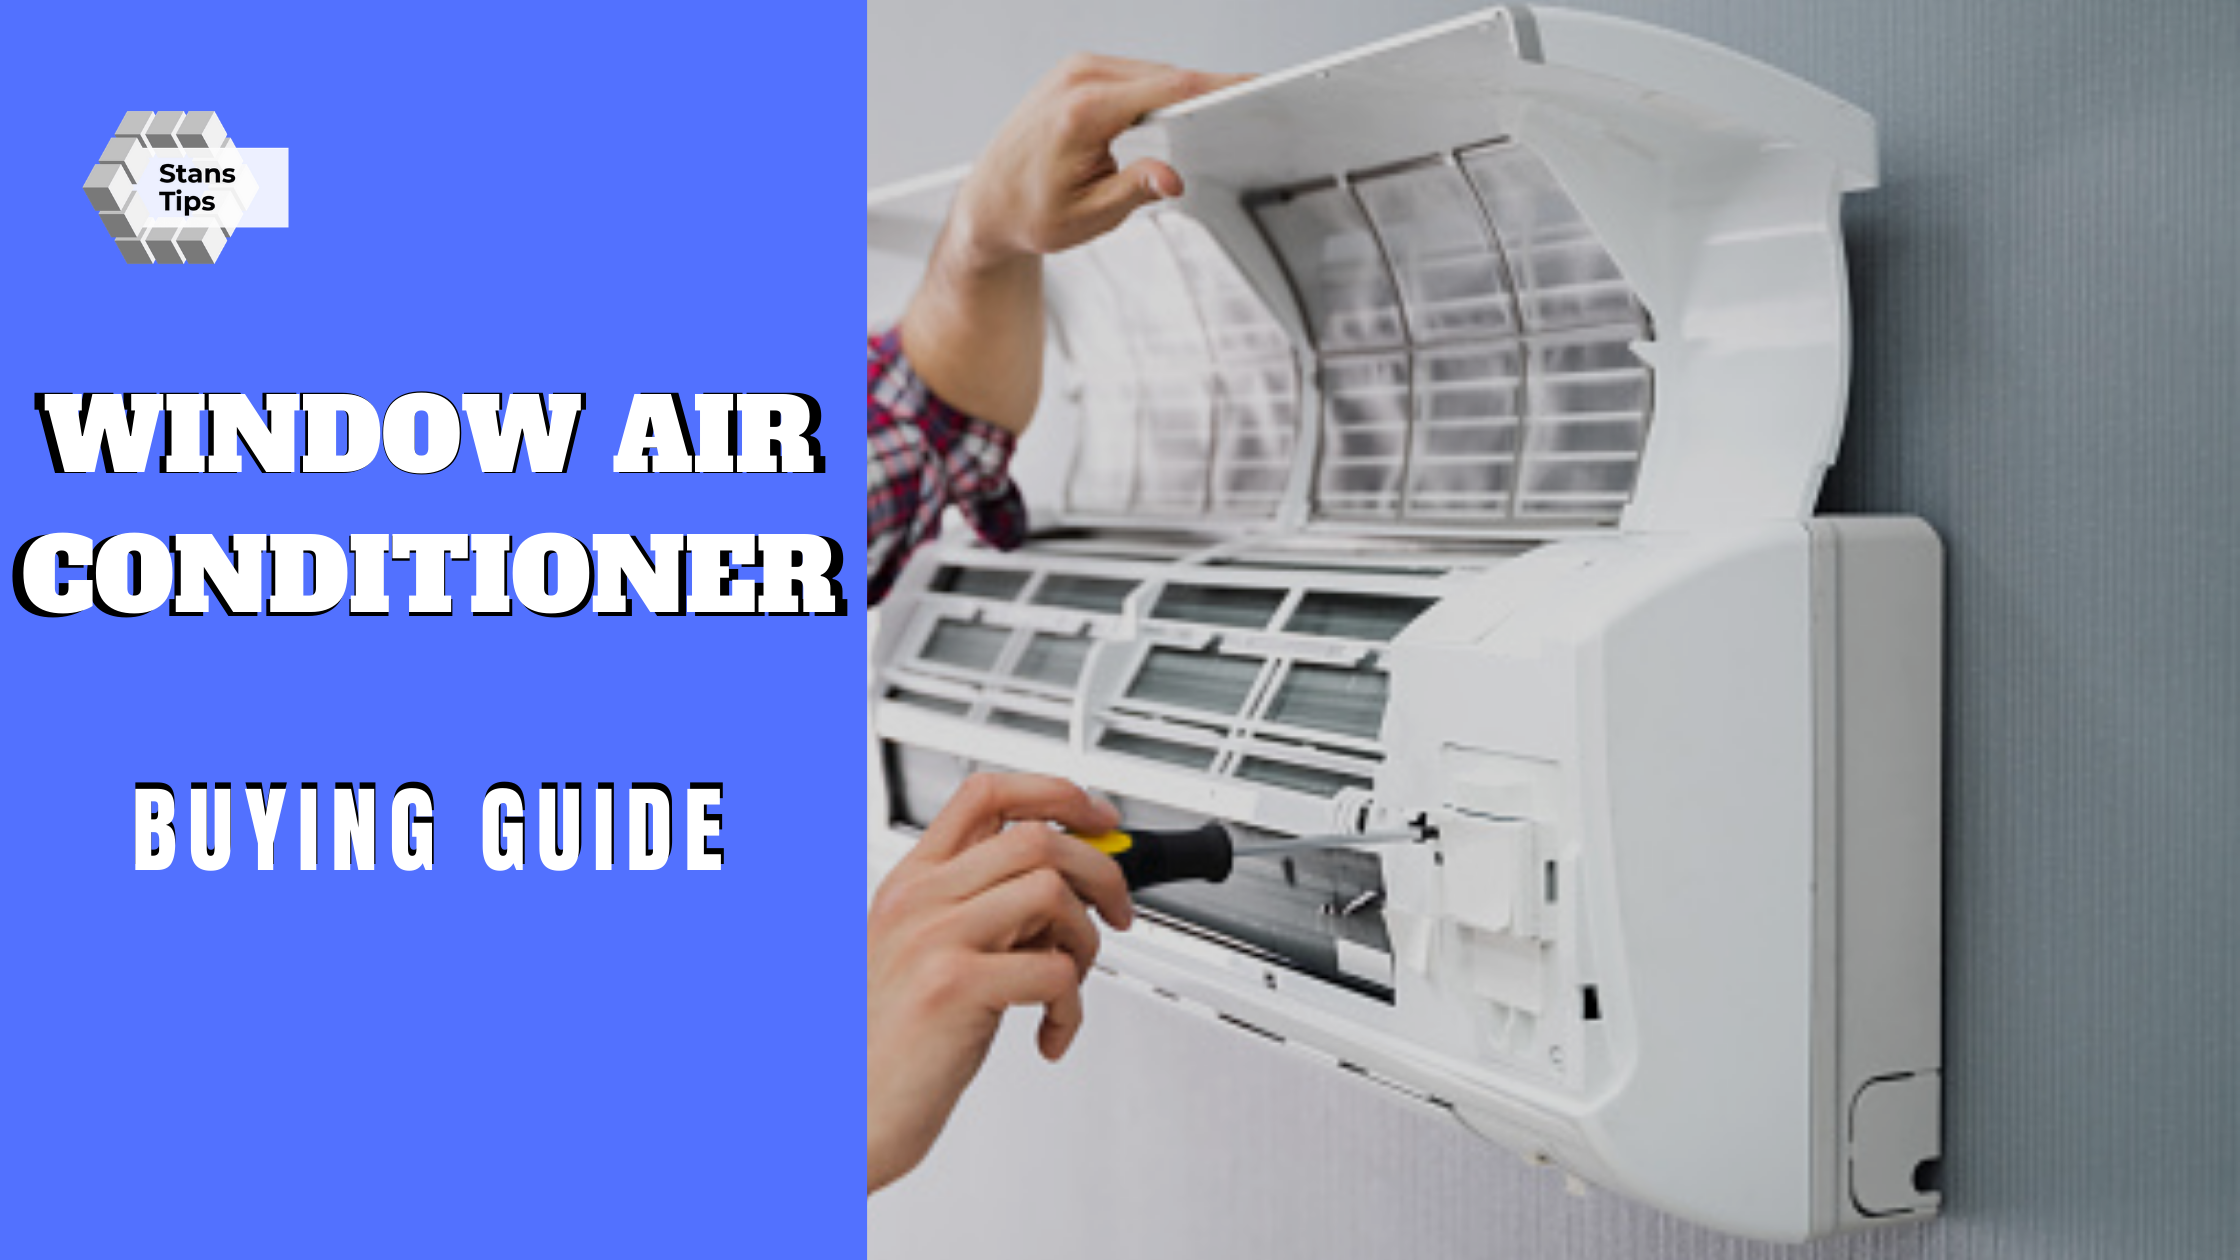 Window air conditioner buying guide in 2021